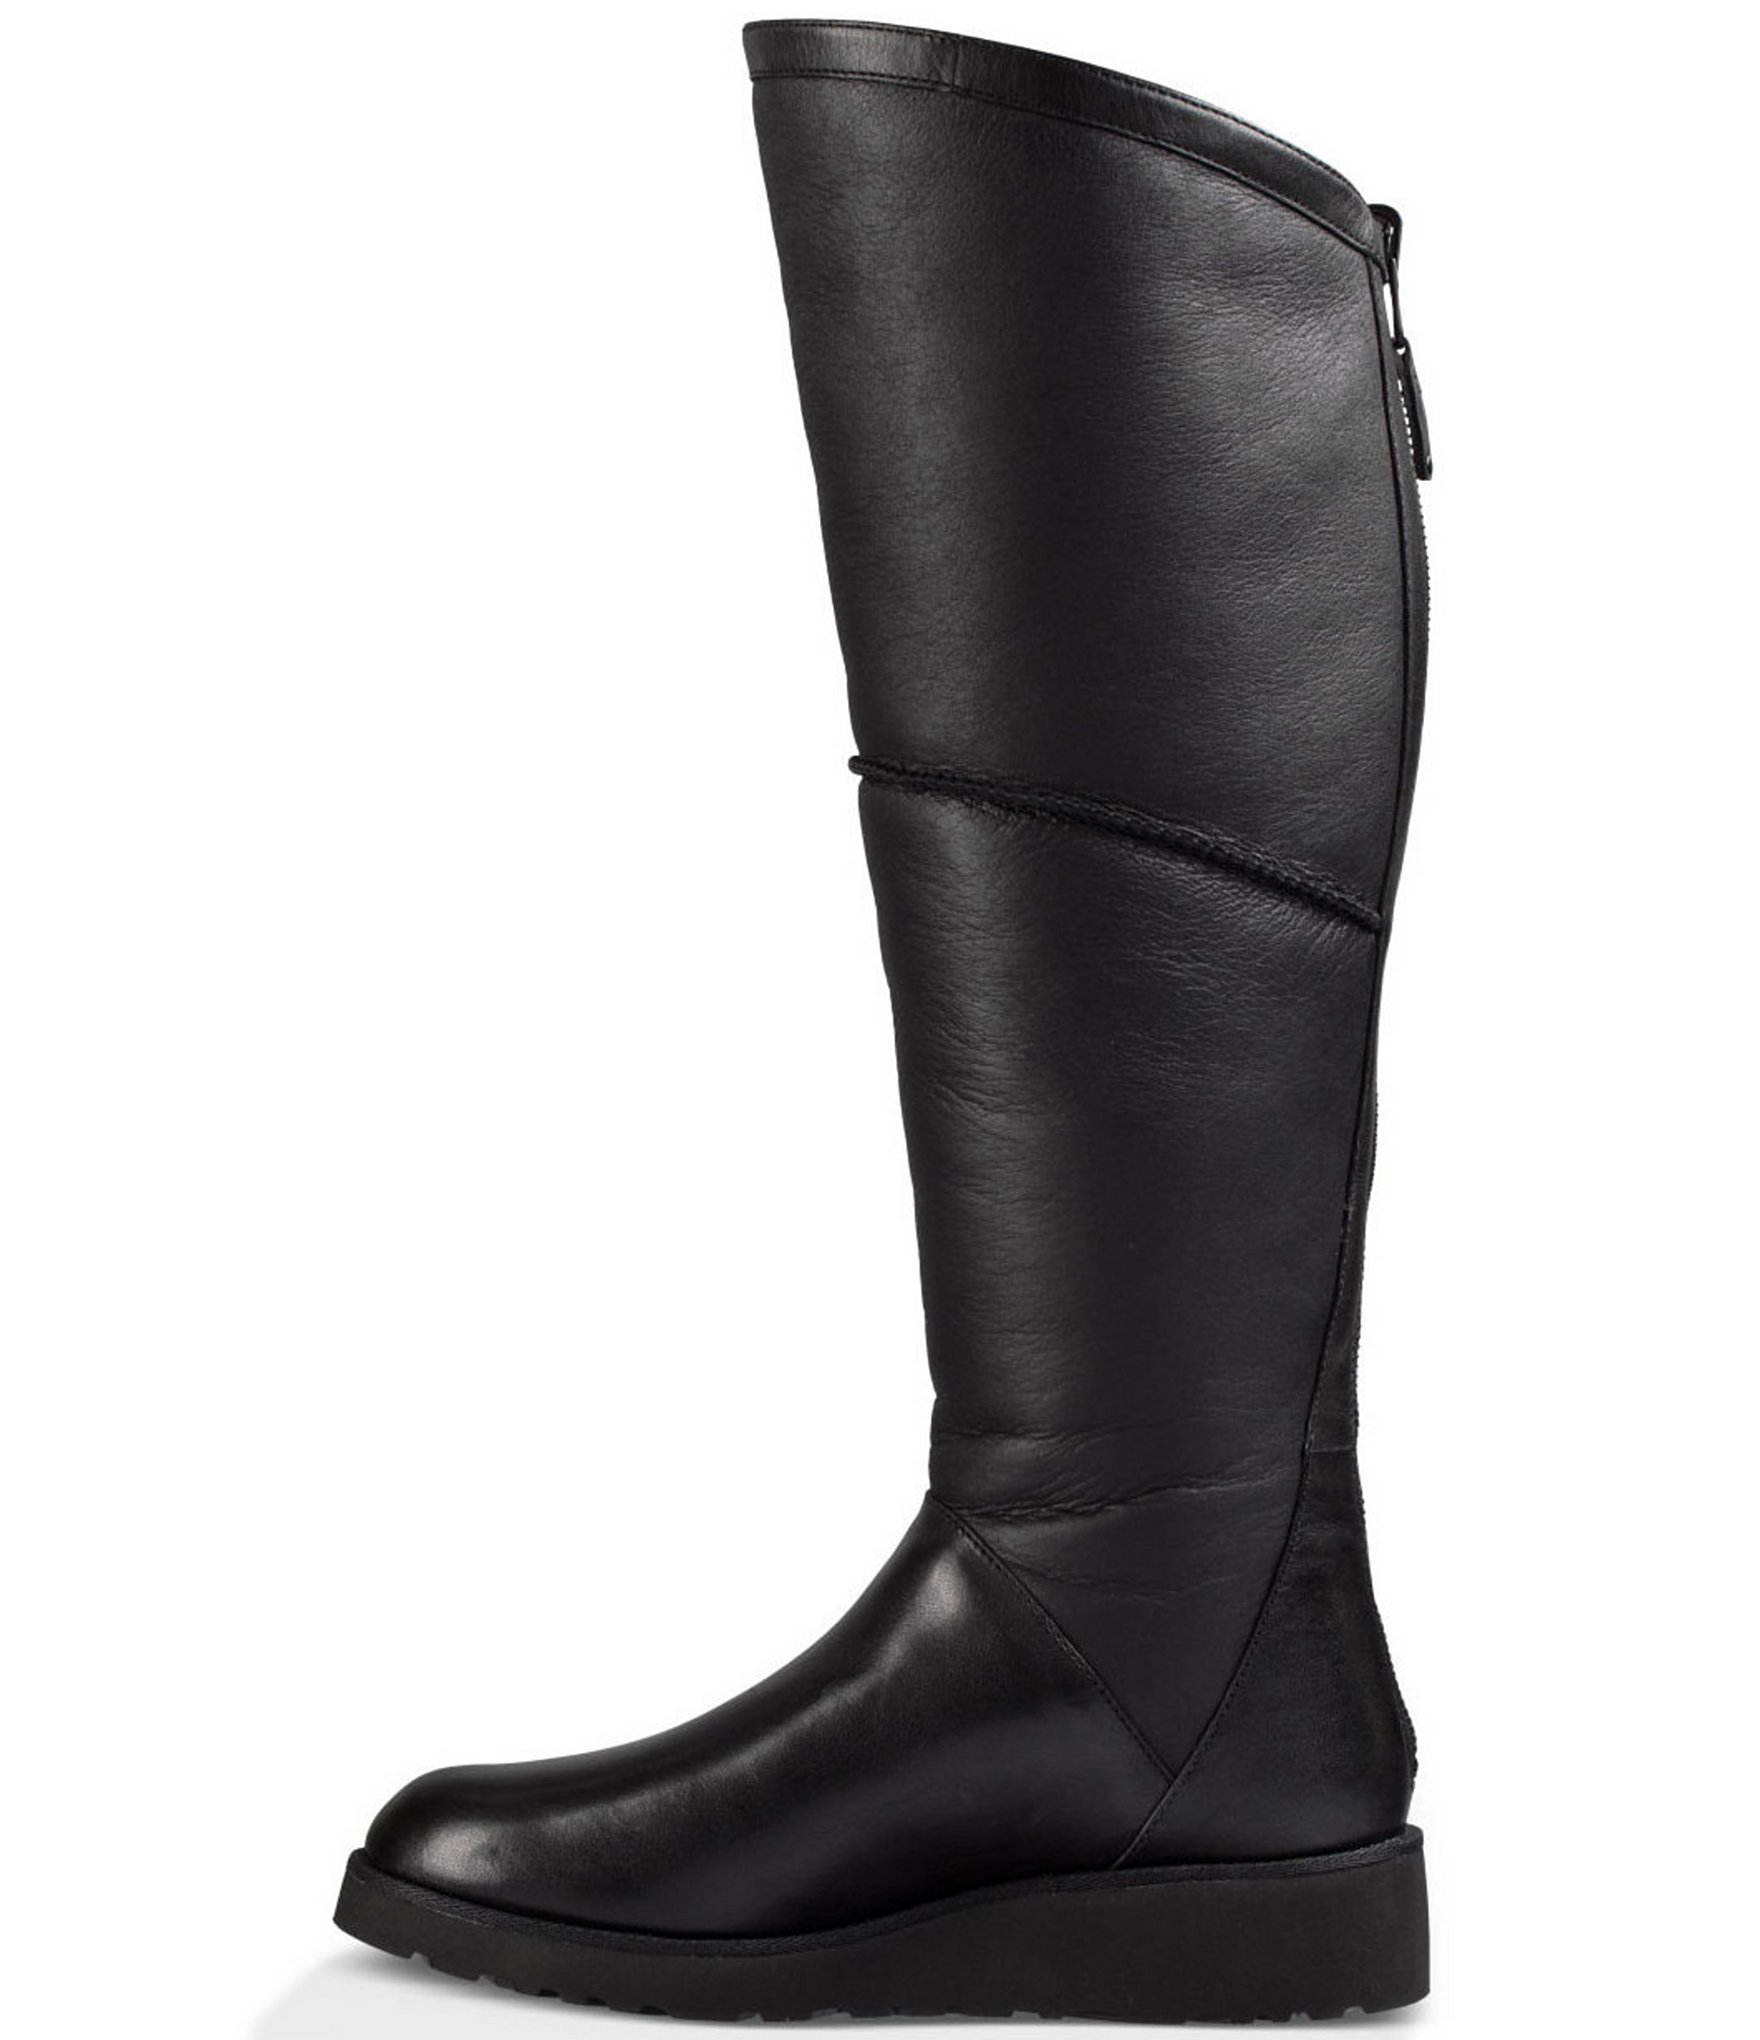 Lyst Ugg Kendi Sheepskin And Leather Wedge Tall Boots In